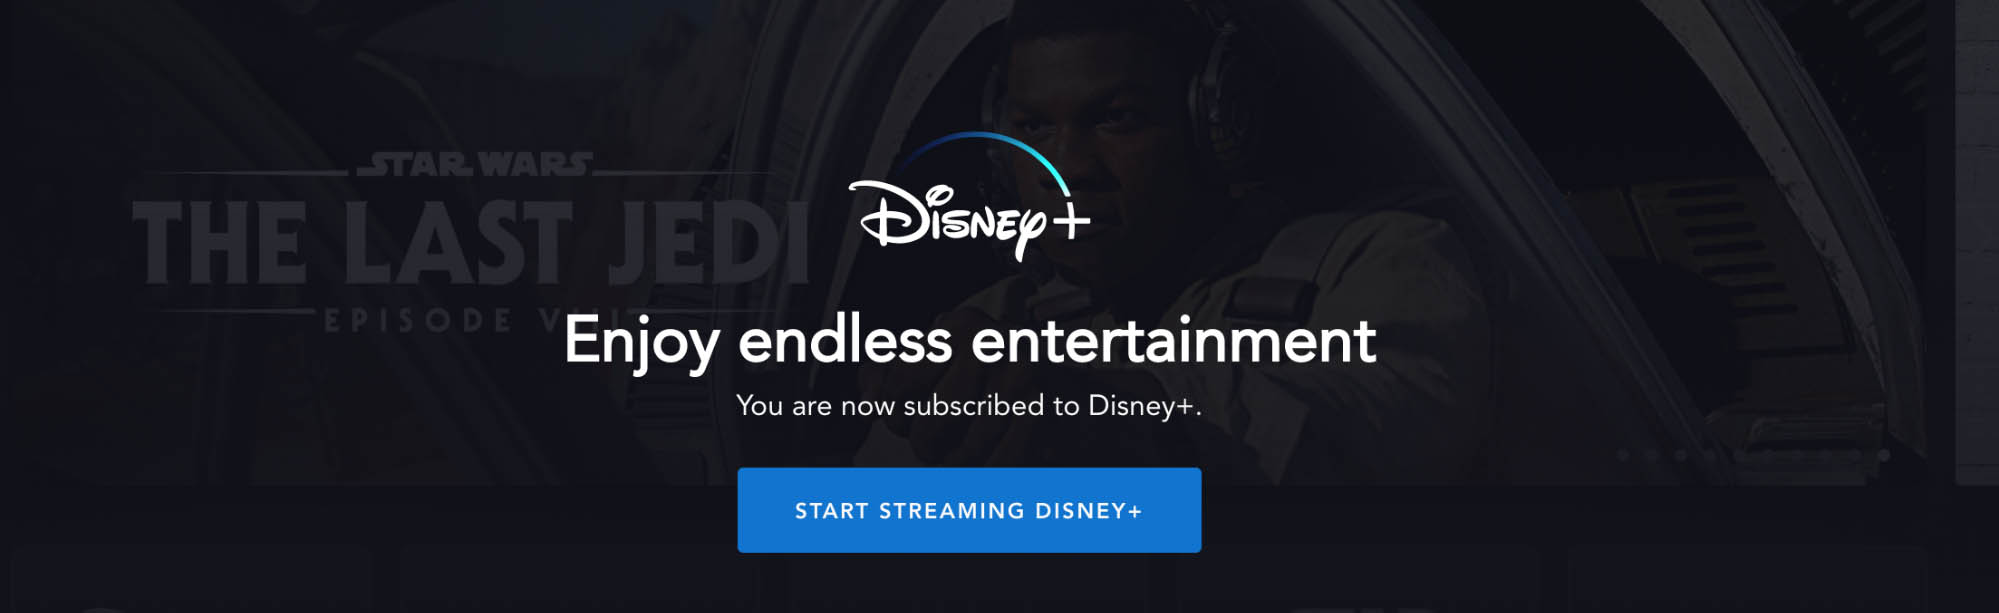 Trickut - disney plus free trial - Disney plus deal - Deals Product Reviews Coupons